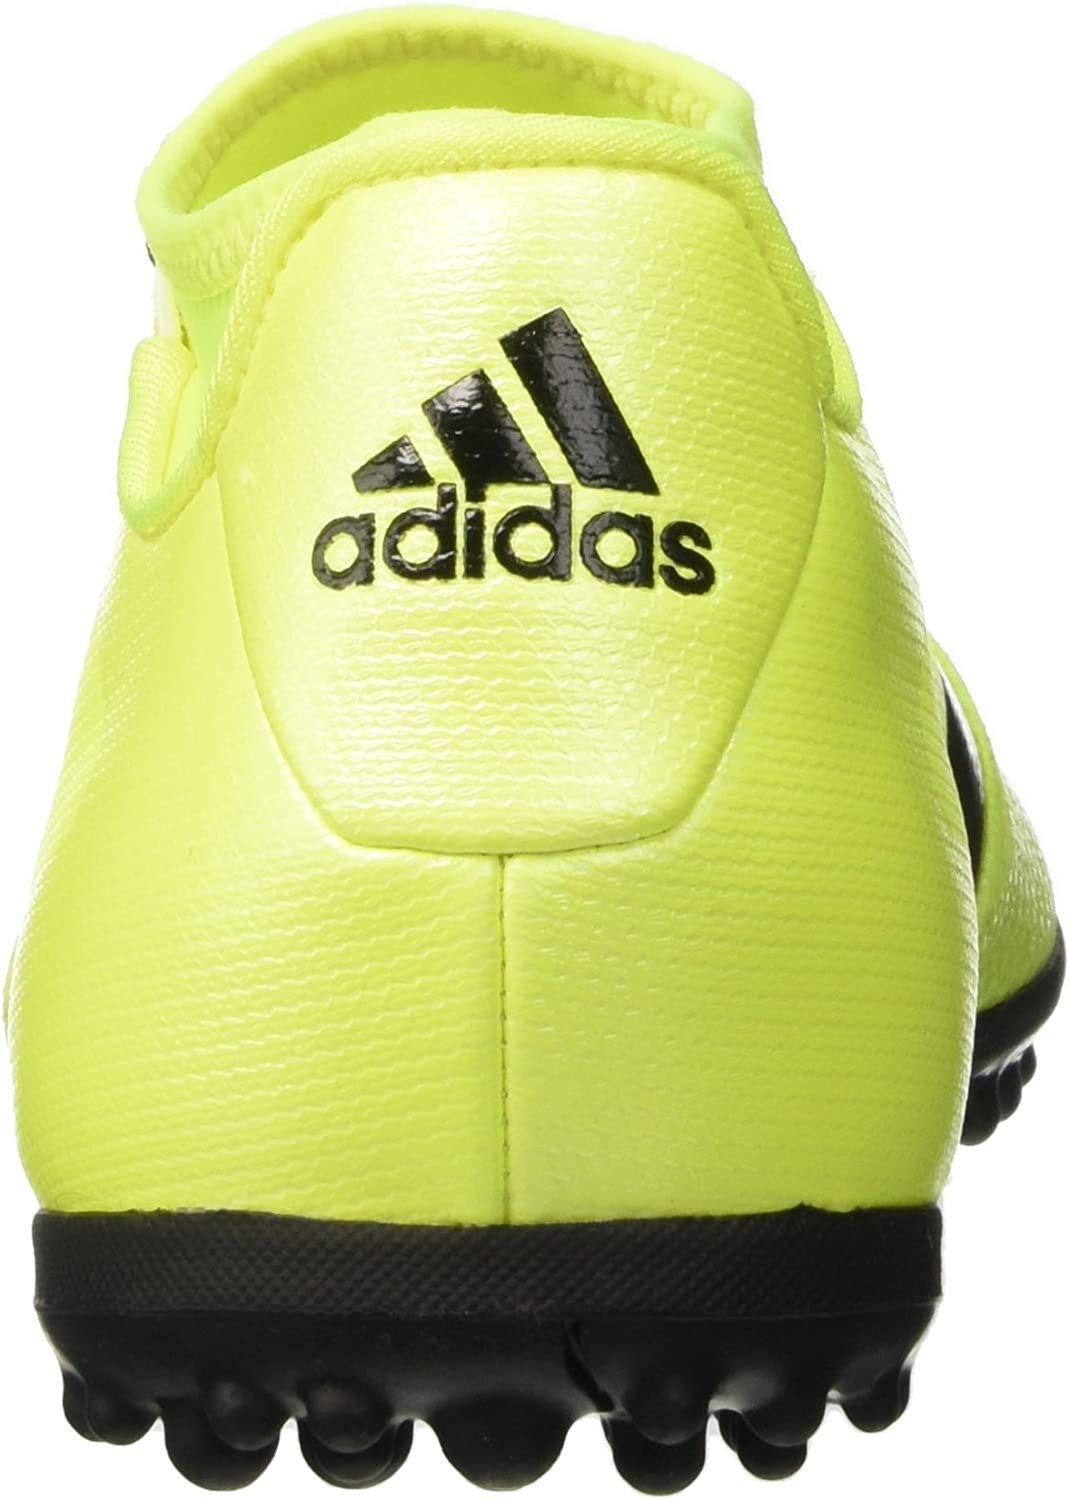 adidas Ace 16.3 Primemesh TF, Chaussures de Football Homme